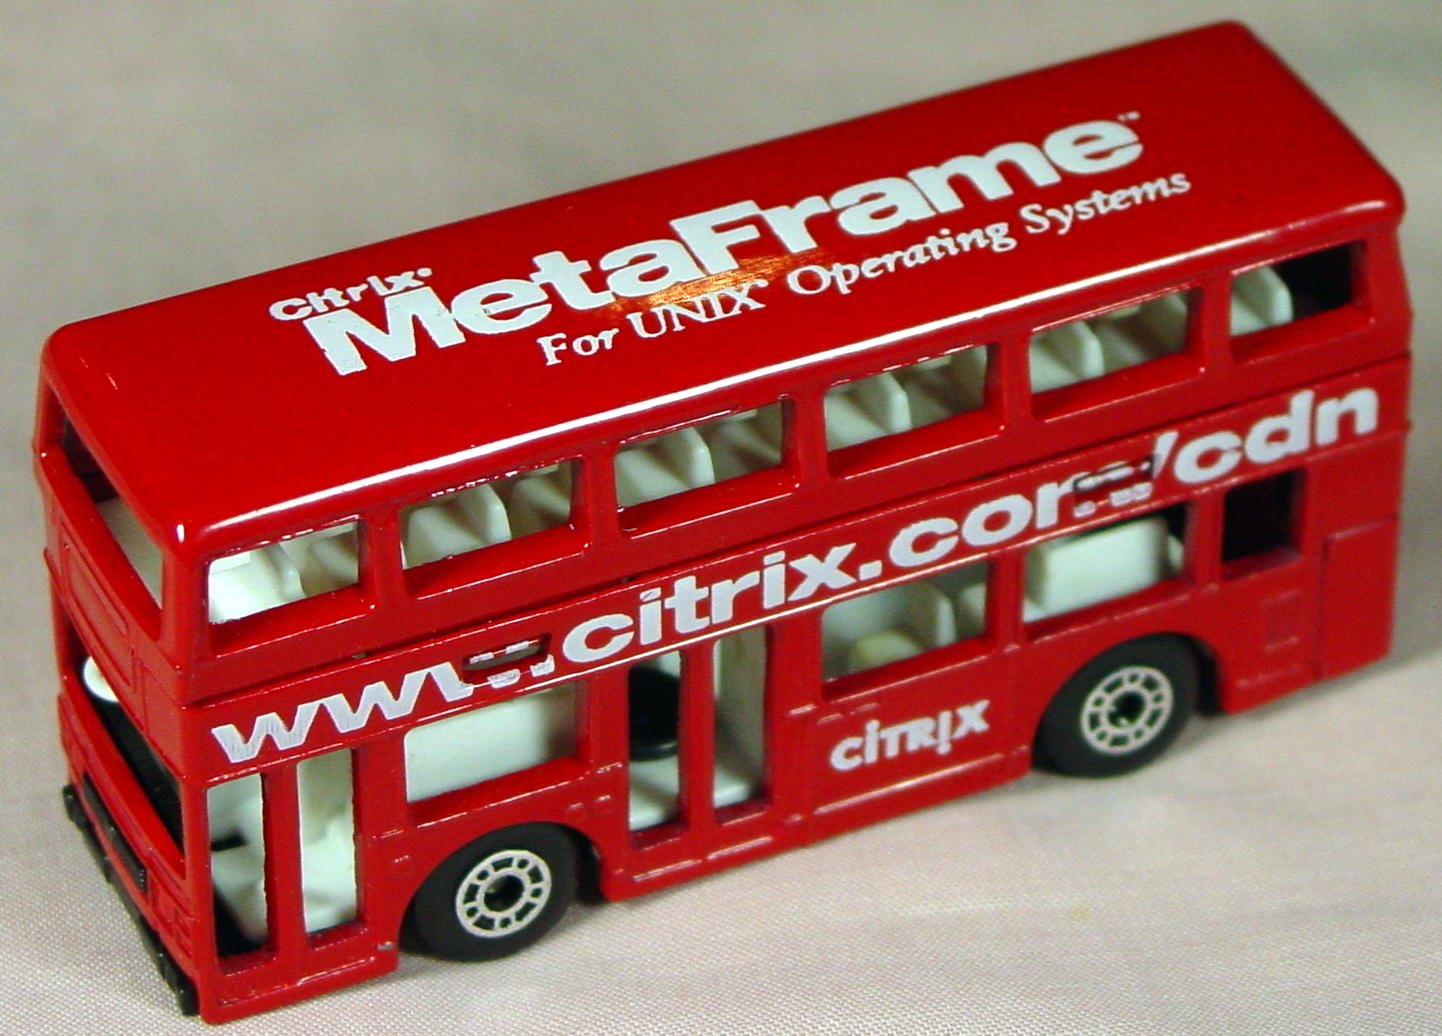 ASAP-CCI 17 C 60 - Titan Bus Red Citrix.com Unix OS made in China ASAP